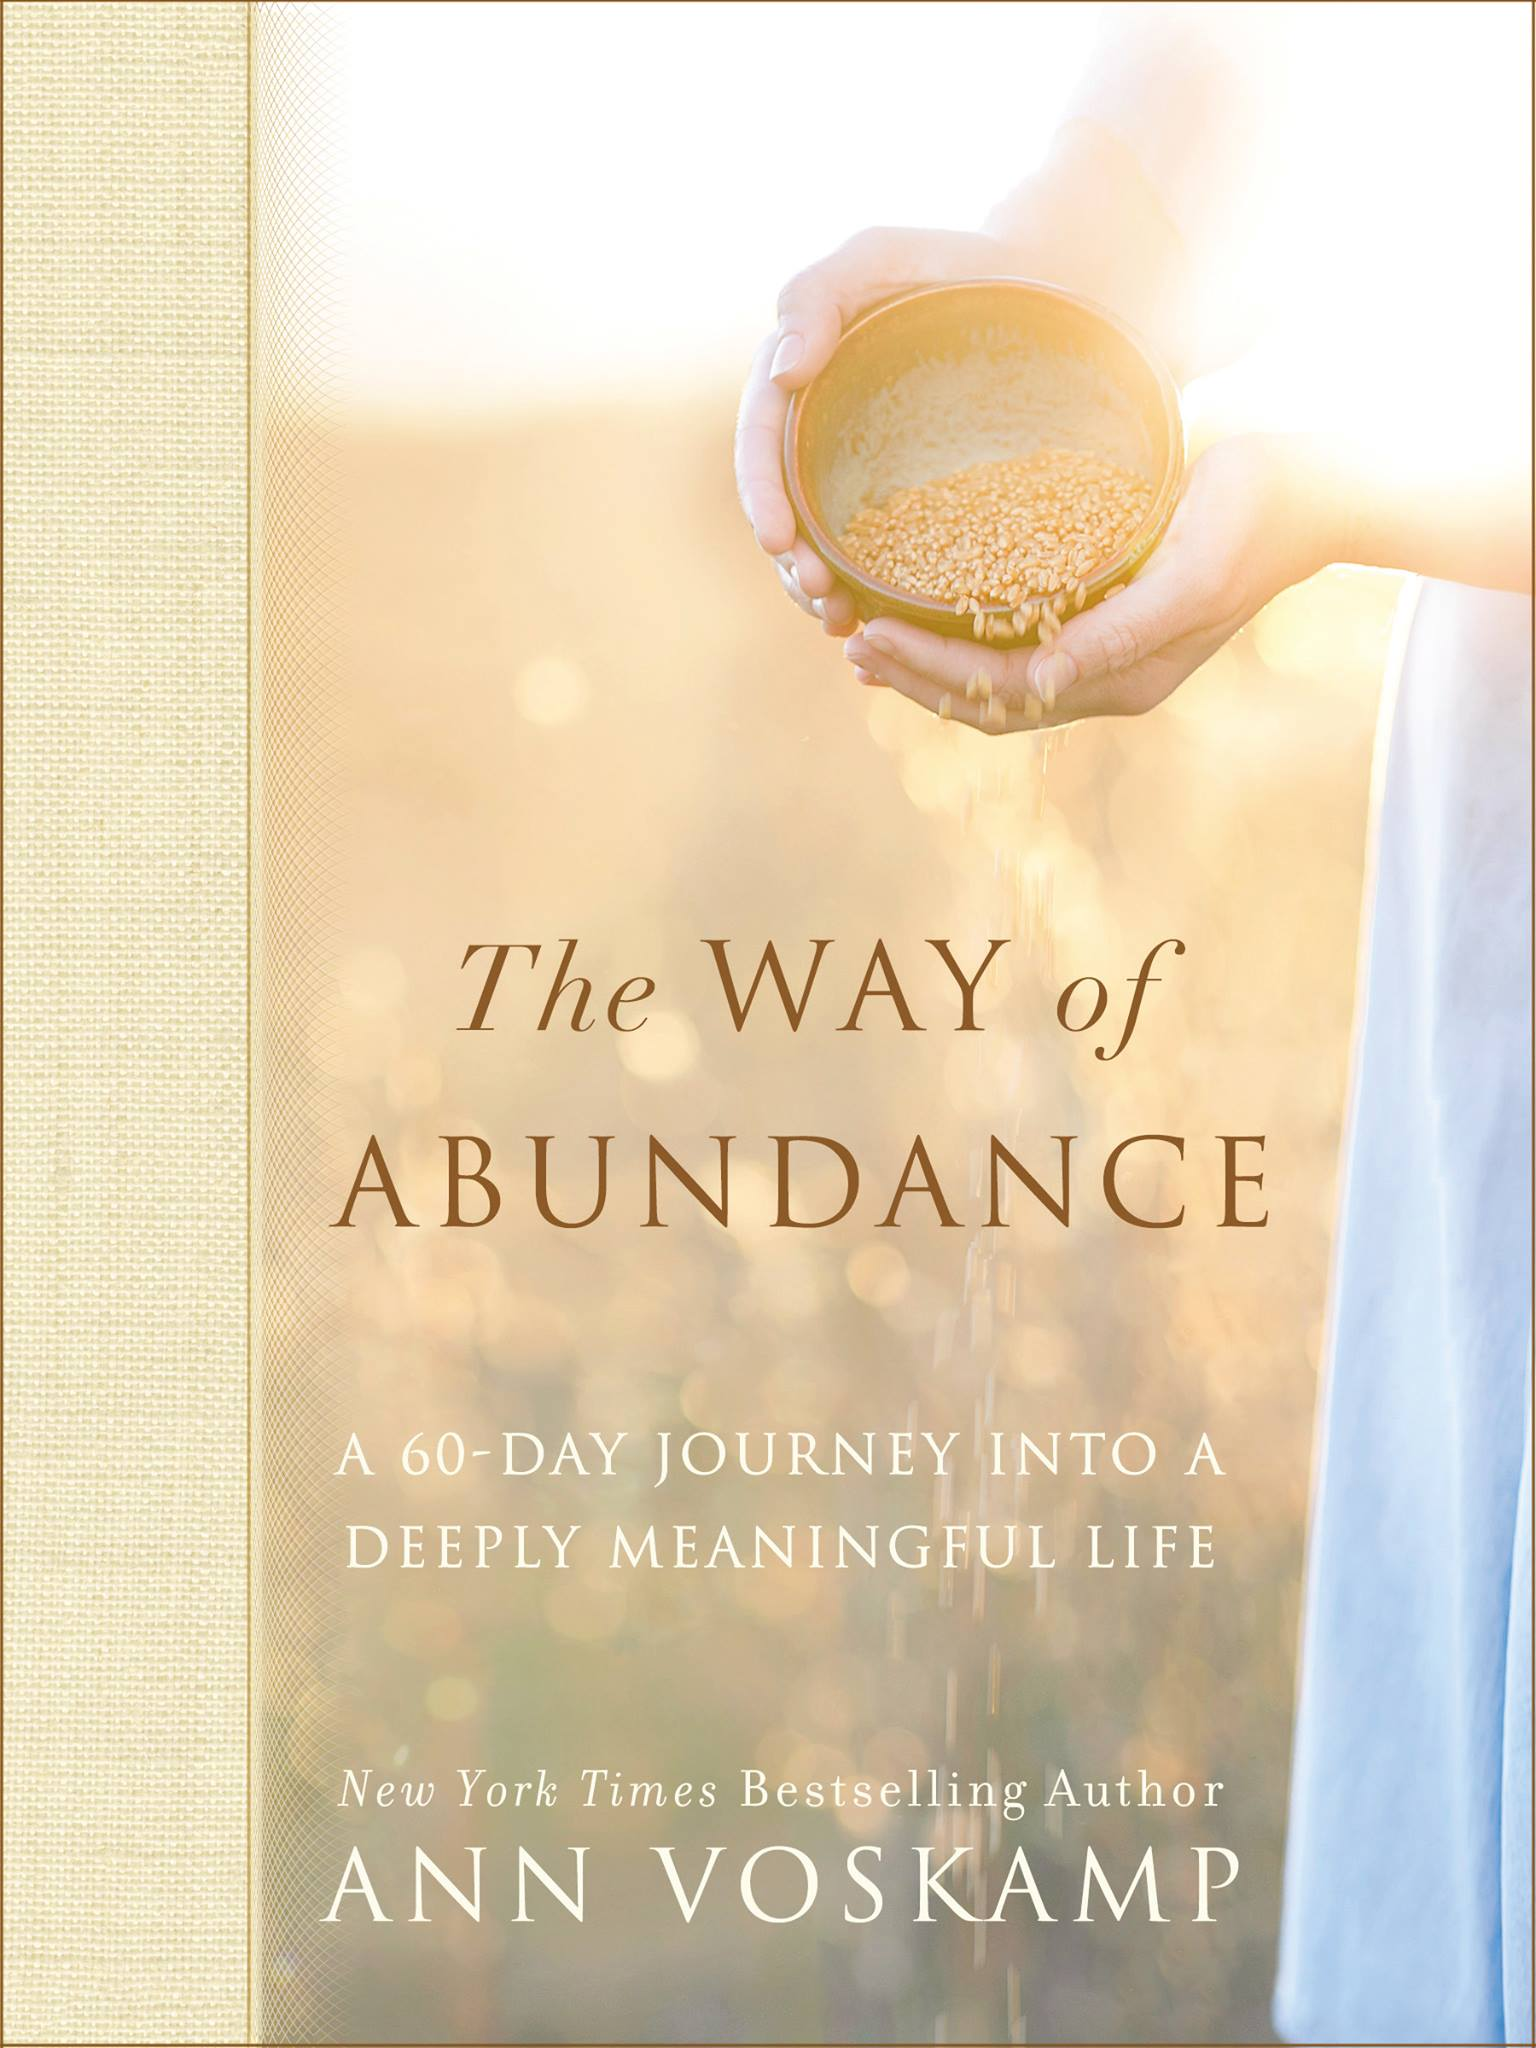 """Die to pride, die to self, die to agendas, die to comfort, die to ease–and your life explodes with abundant life. Unexpectedly, the secret to abundance is not about self–but about dying to self."" The Way of Abundance by Ann Voskamp will help you discover, the way to abundant life is living cruciform."